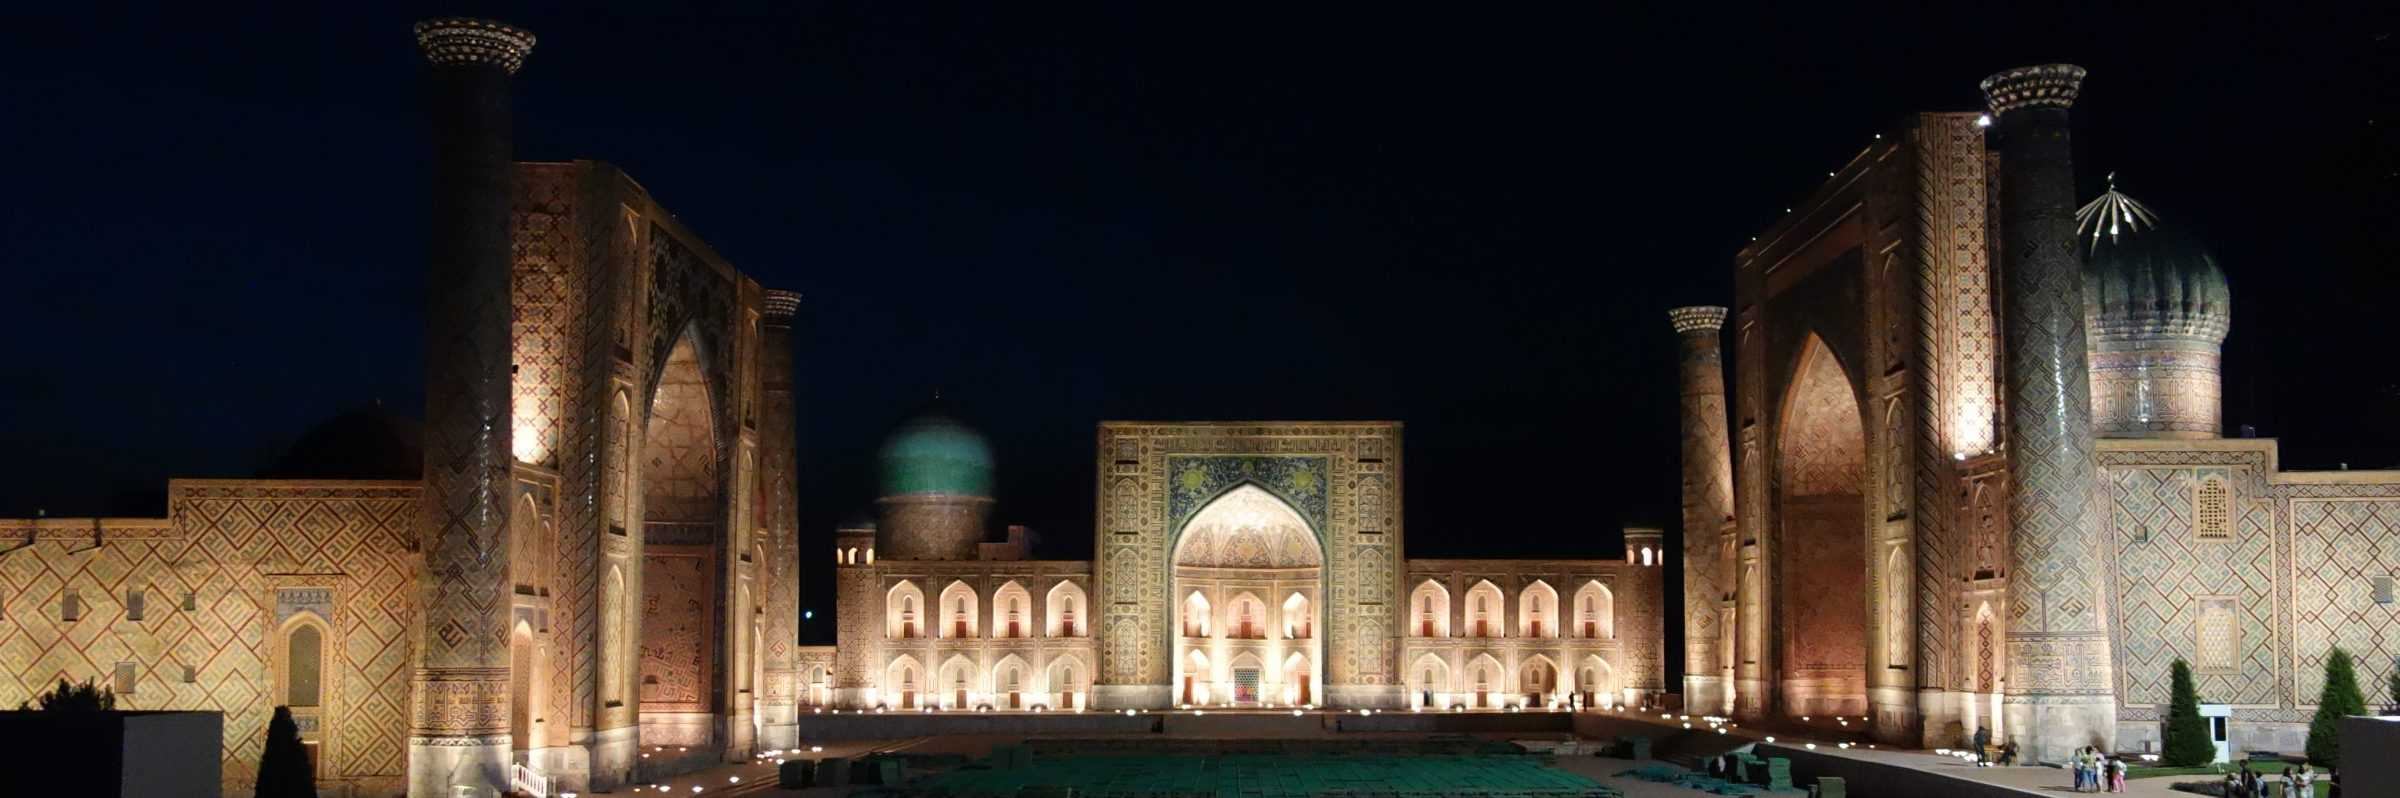 Samarkand Registan by night